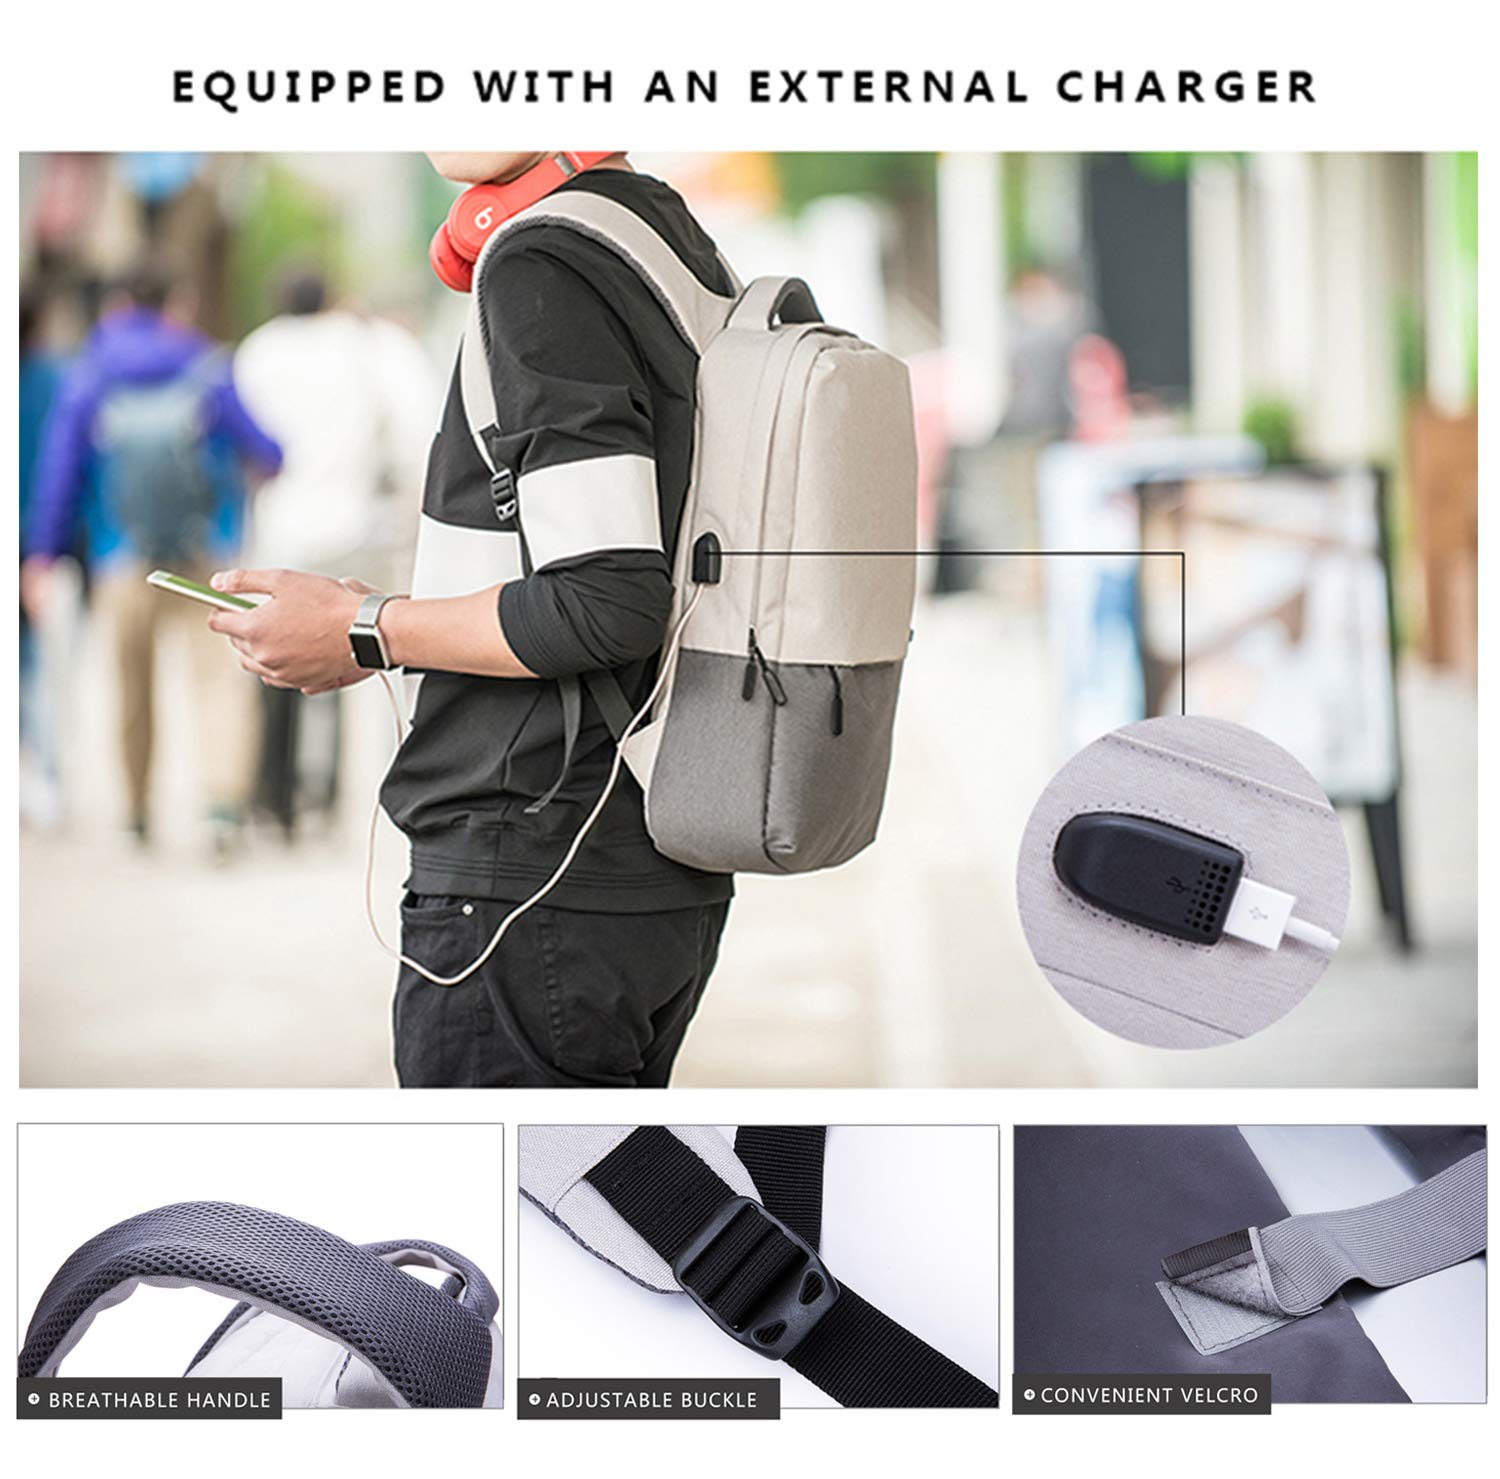 Laptop Backpack, Travel Computer Bag with USB Charging Port, School Backpack, Fits up to 15.6 inch Tablet Notebook for Work Business College